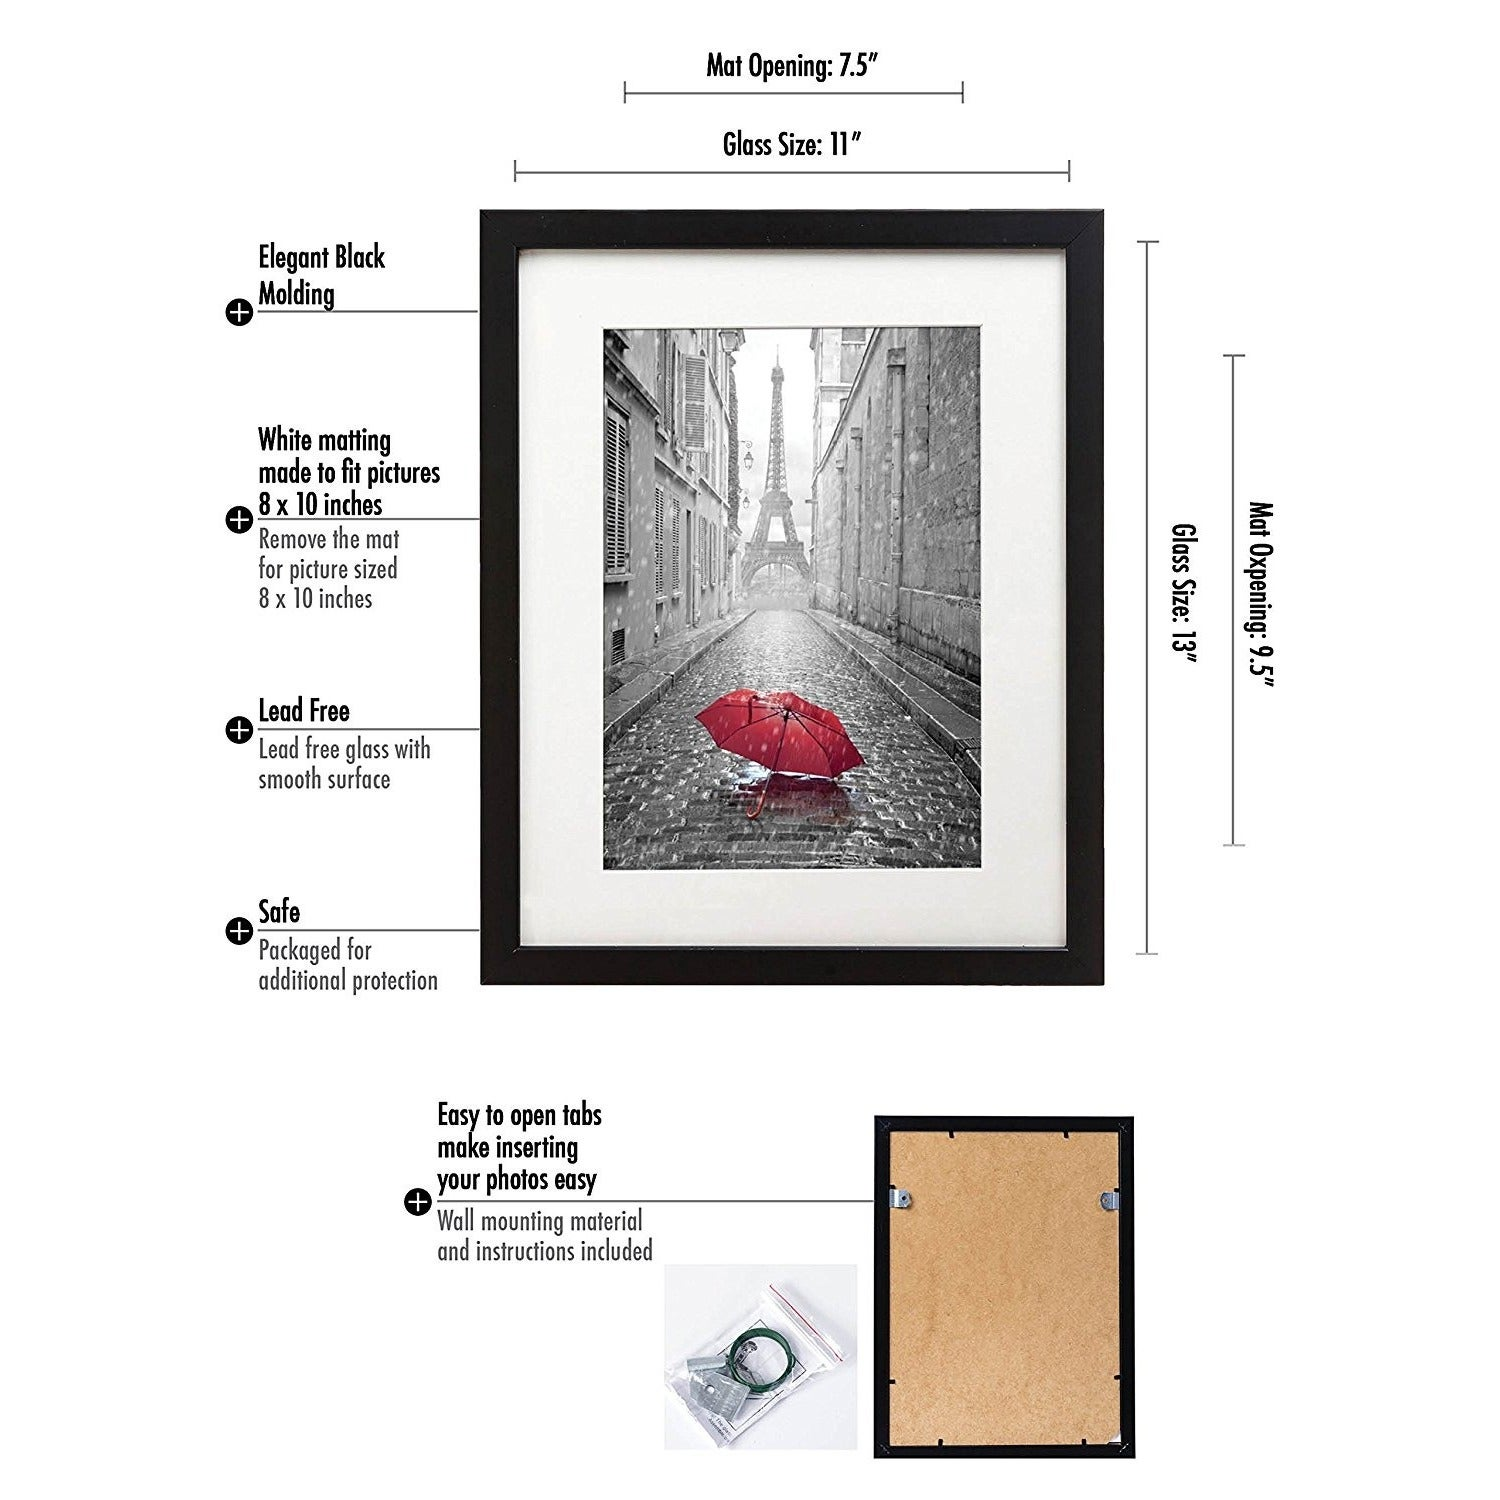 11 x 13 inch black picture frame with hanging hardware for 8 x 10 11 x 13 inch black picture frame with hanging hardware for 8 x 10 inch pictures with mat or 11 x 13 inch pictures without mat free shipping on orders over jeuxipadfo Image collections